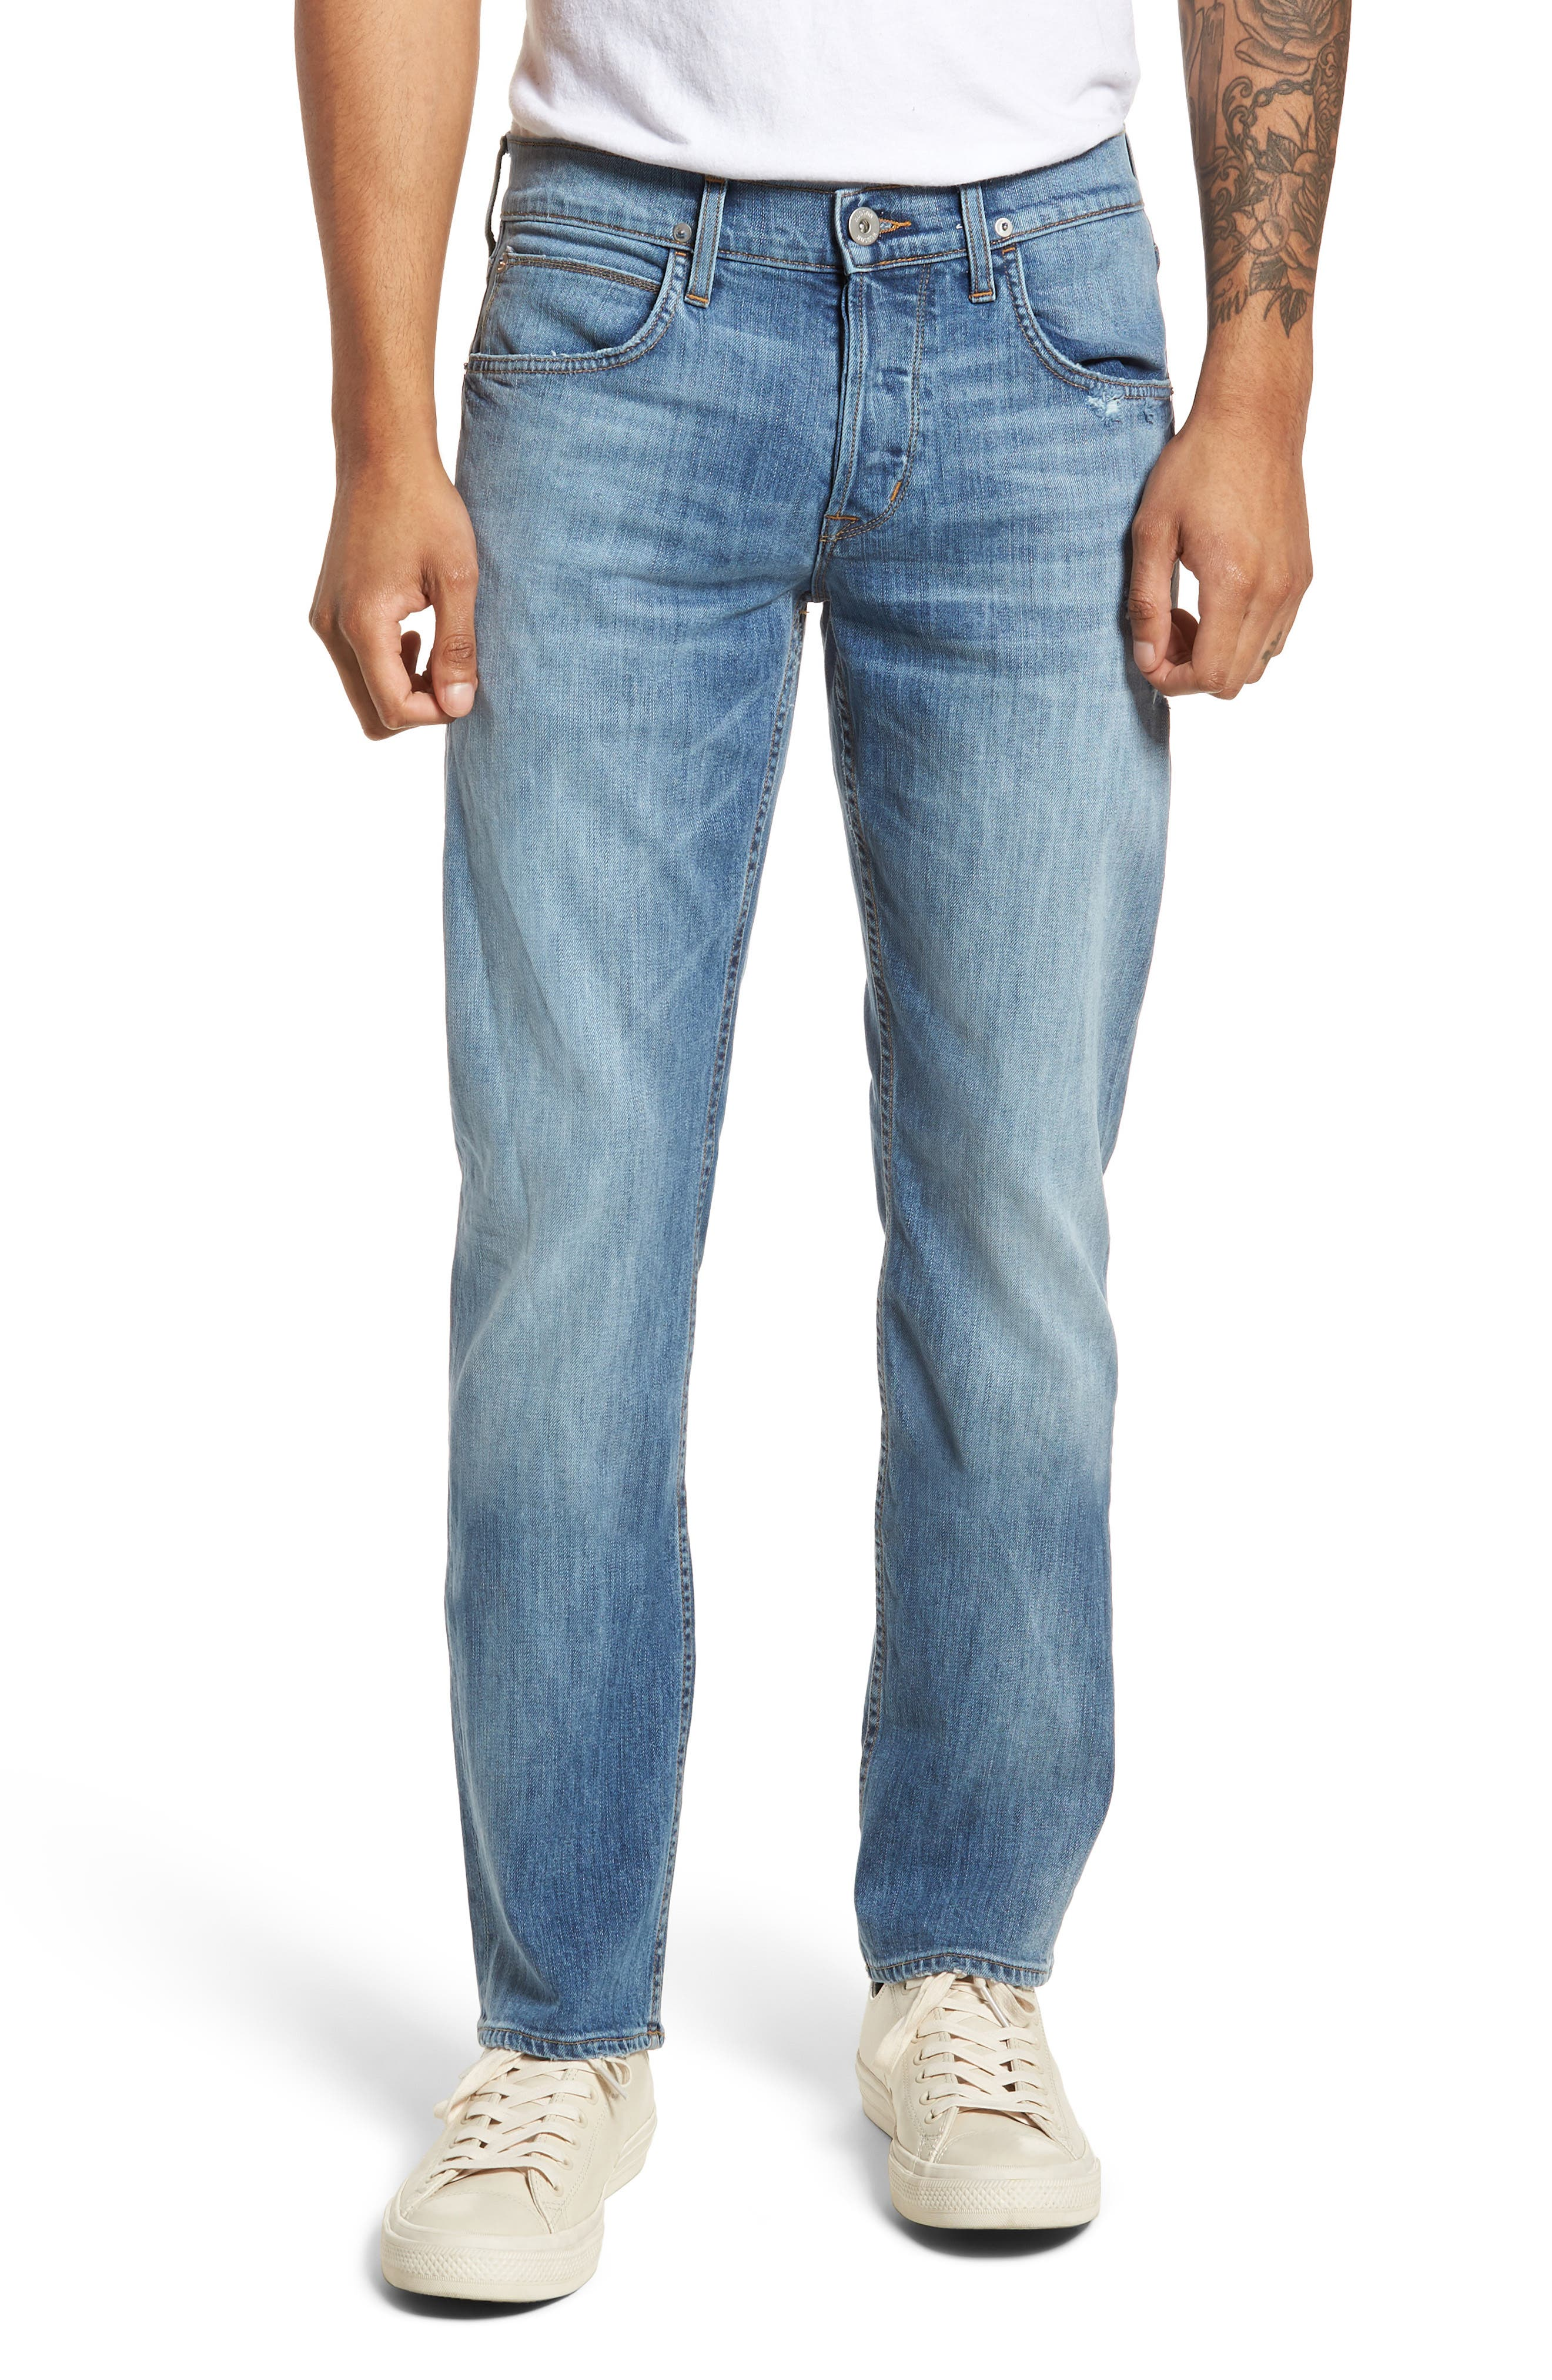 Byron Slim Straight Fit Jeans,                             Main thumbnail 1, color,                             425